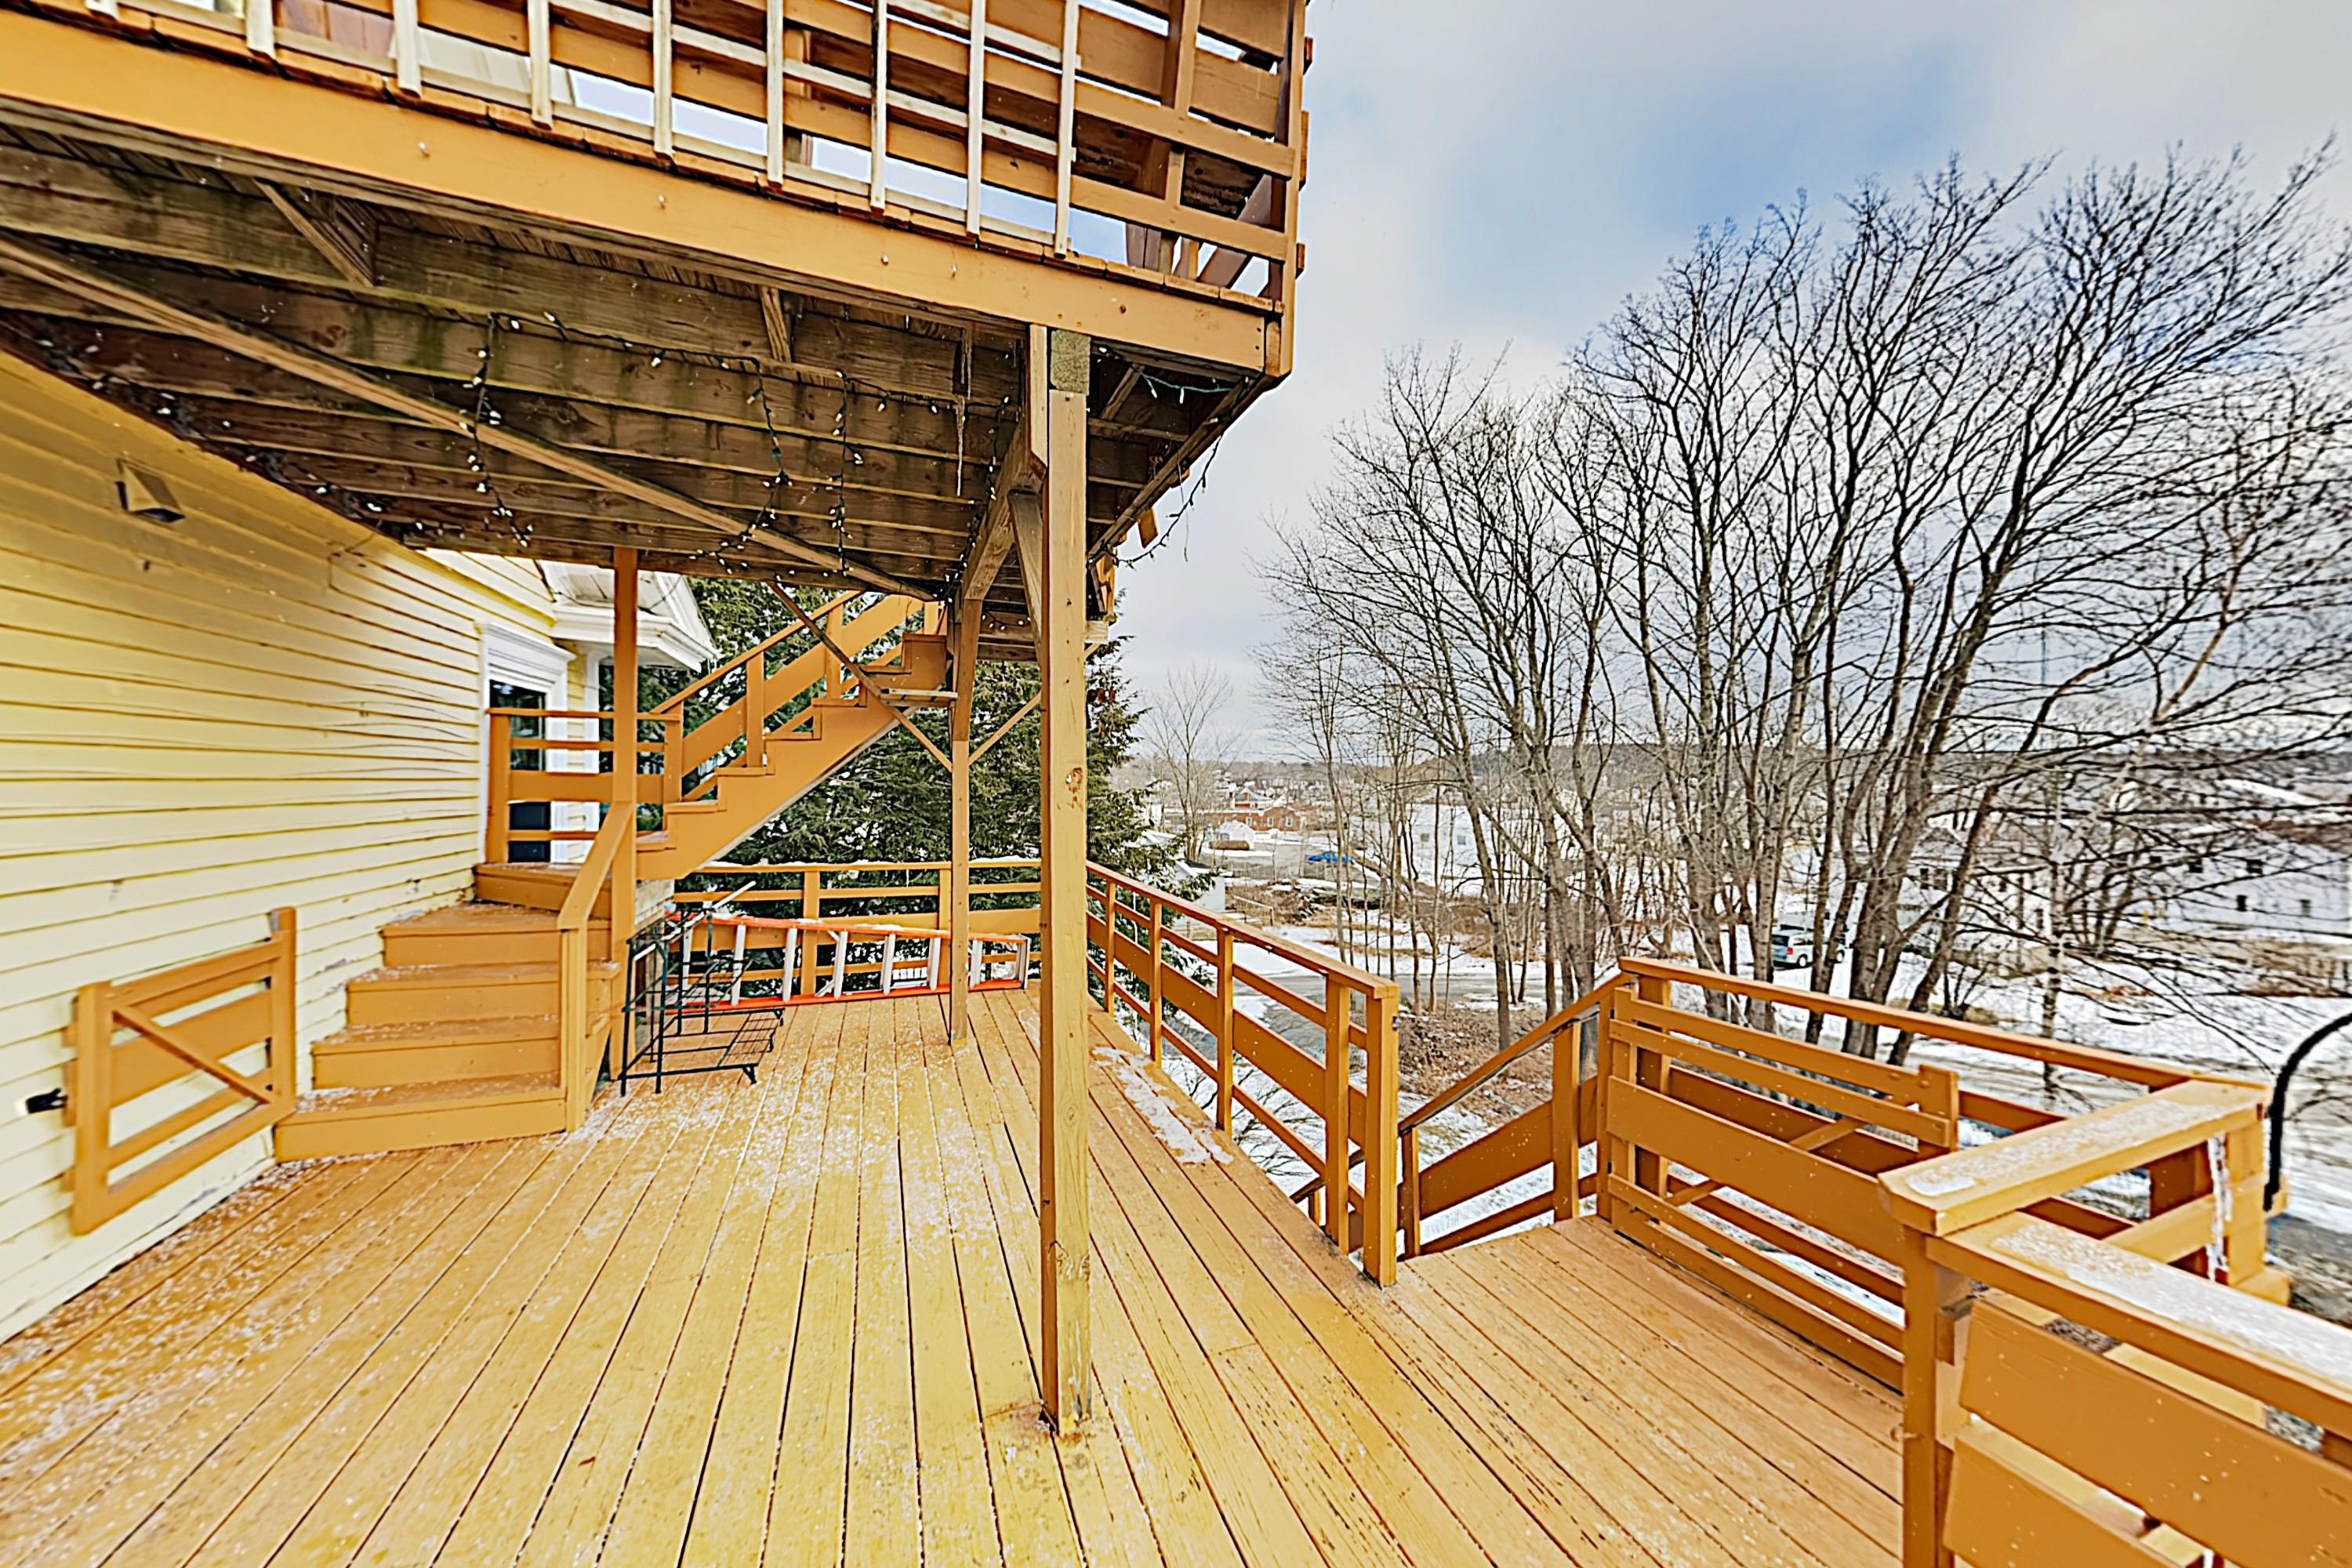 Soak up the sun on the wooden deck.